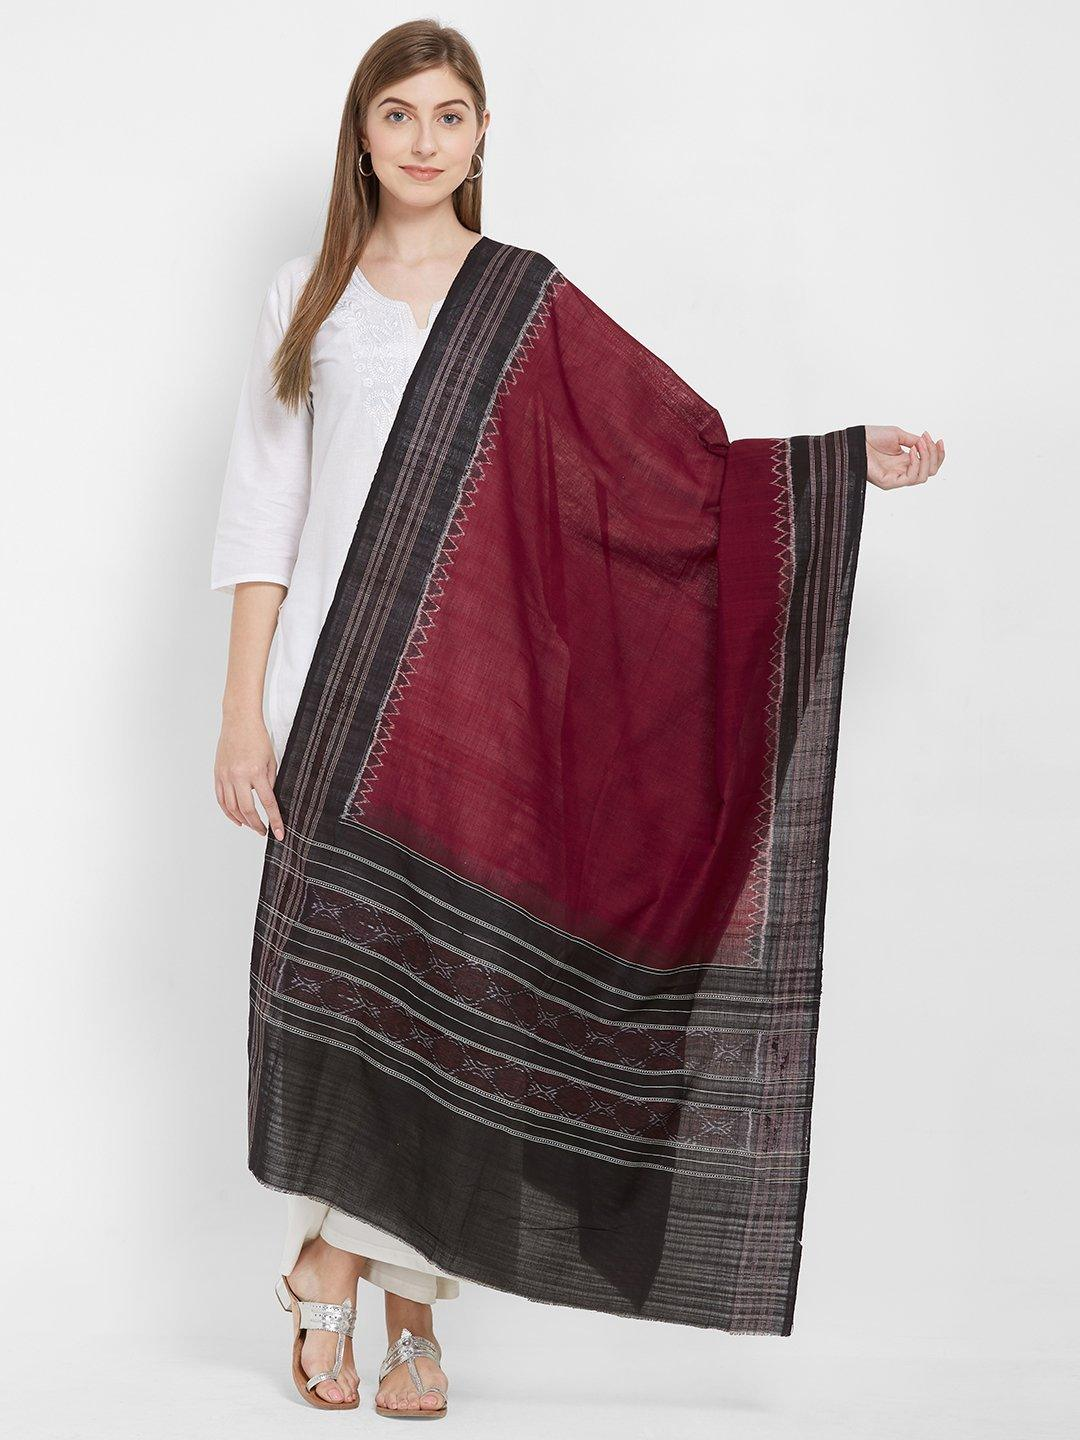 CraftsCollection.in -Maroon and Black Sambalpuri  Cotton Dupatta